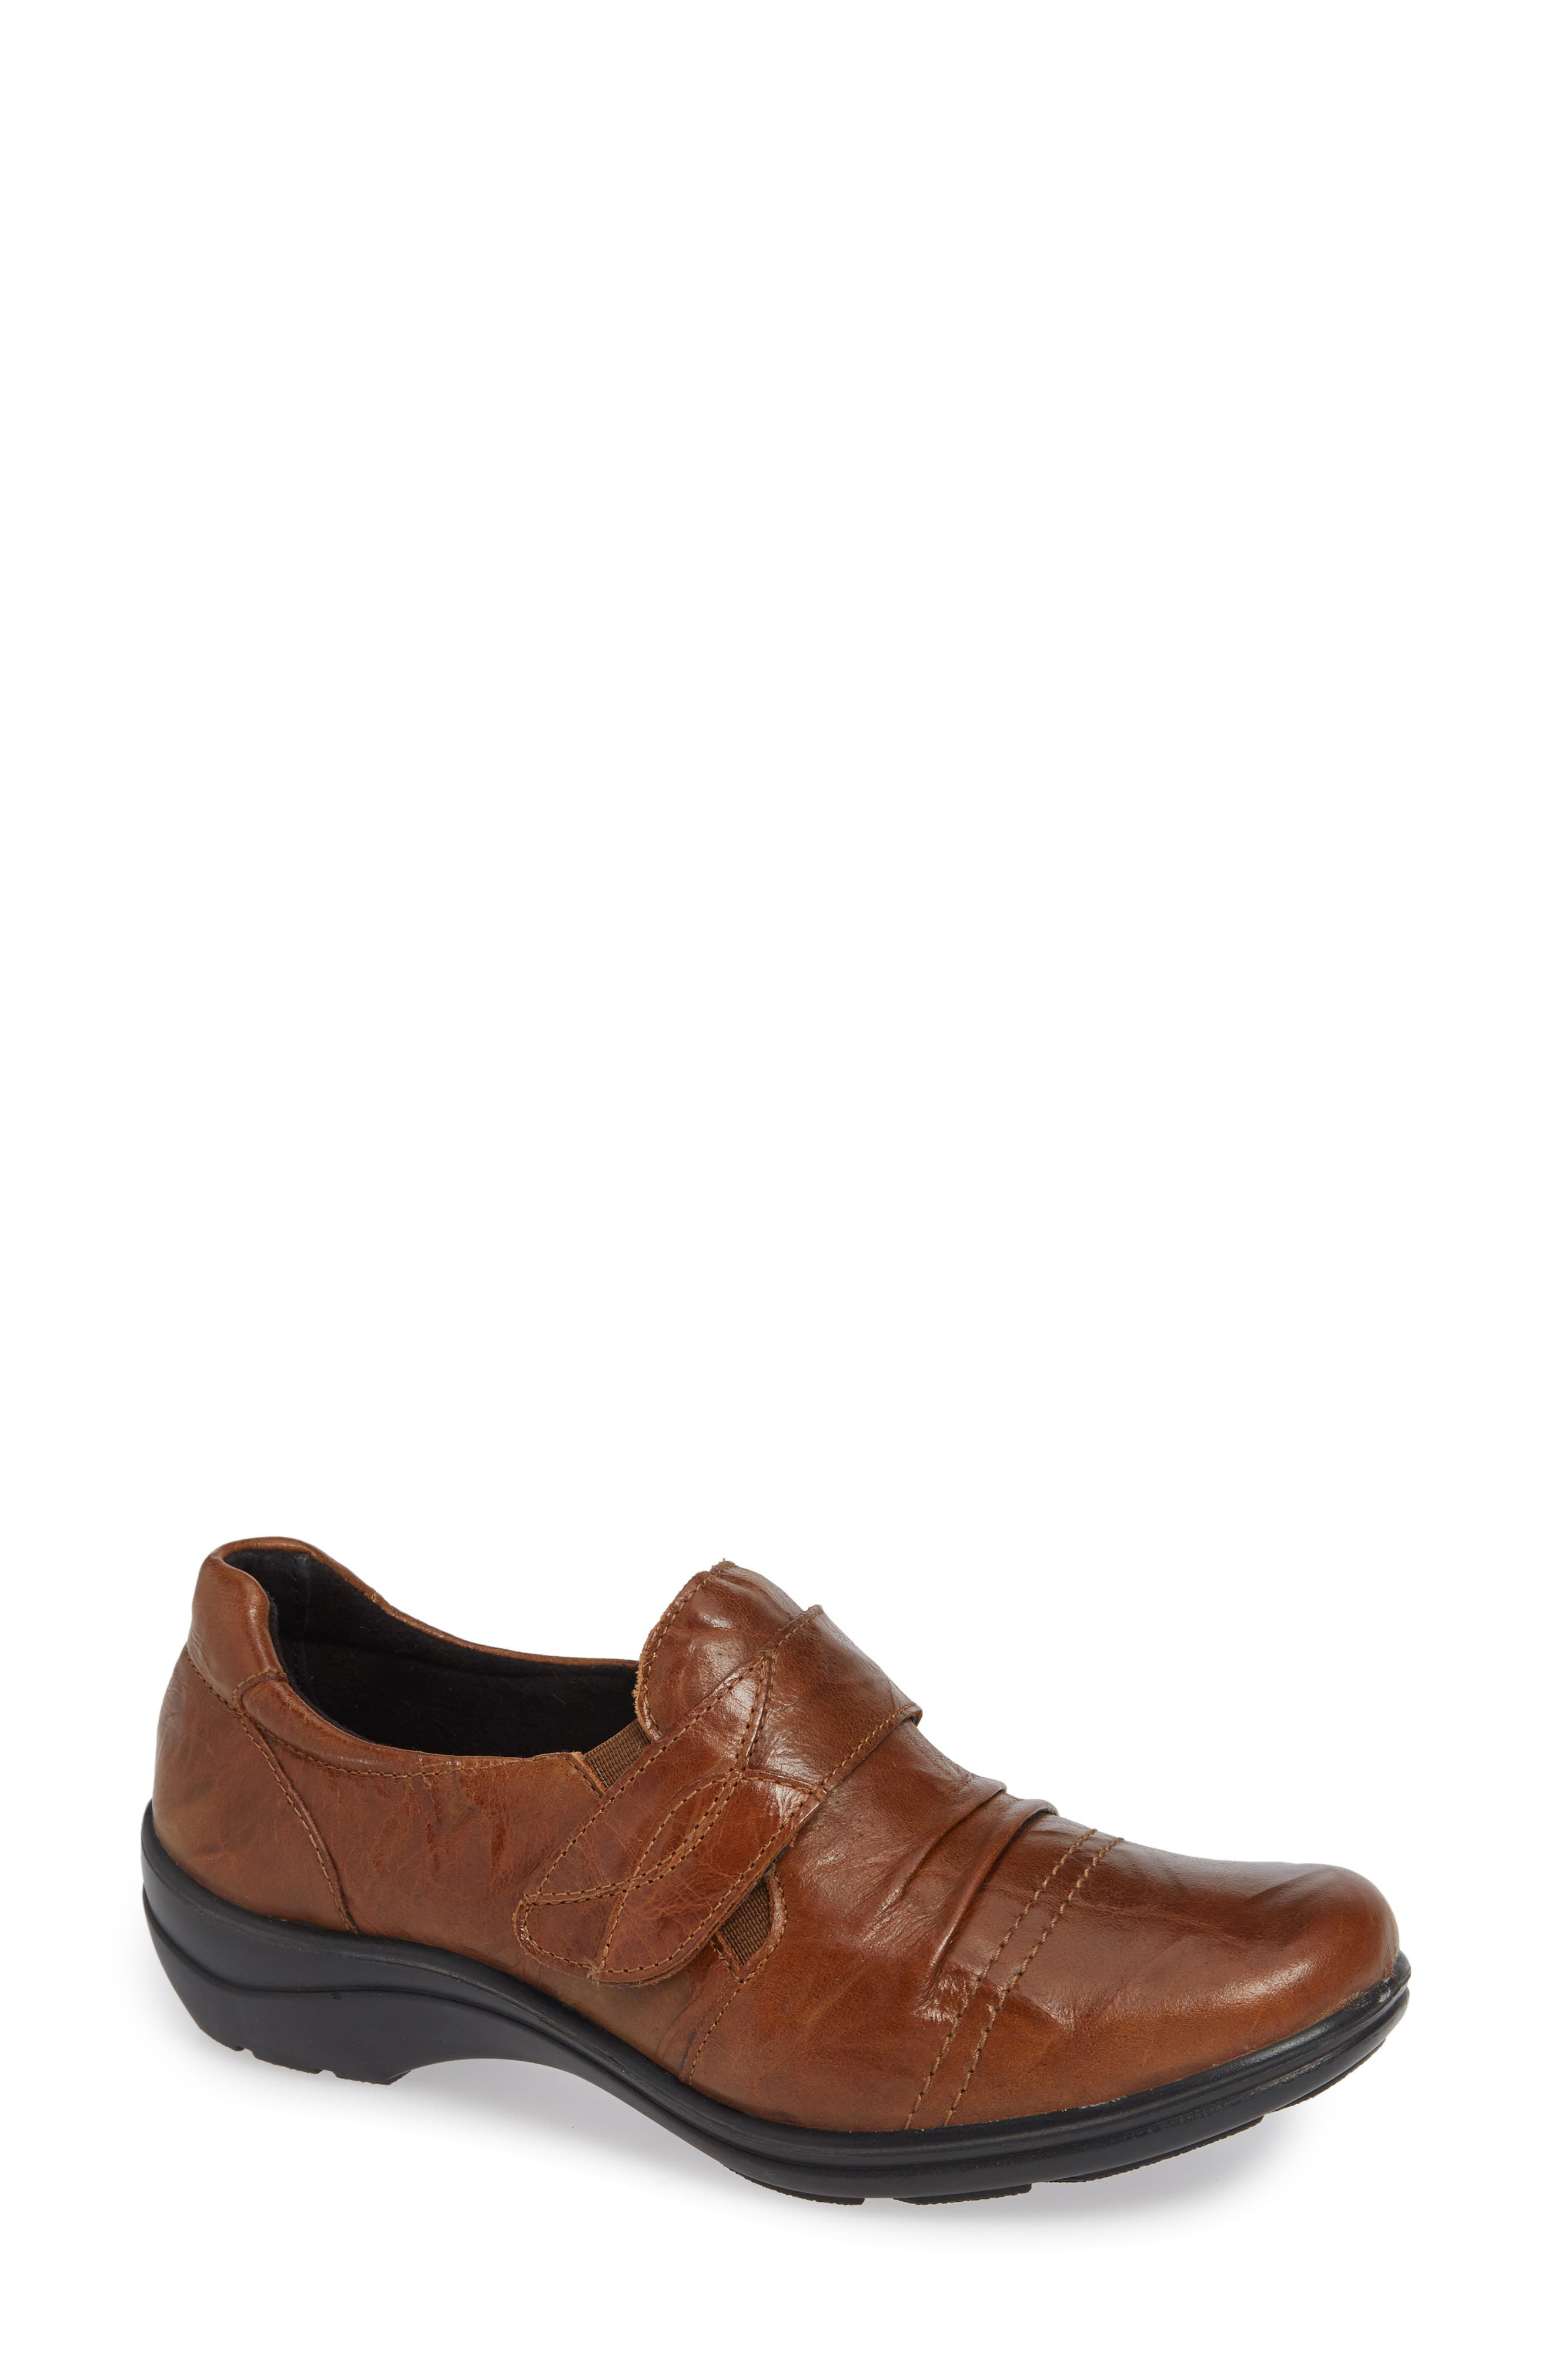 Cassie 43 Loafer,                             Main thumbnail 1, color,                             BROWN LEATHER